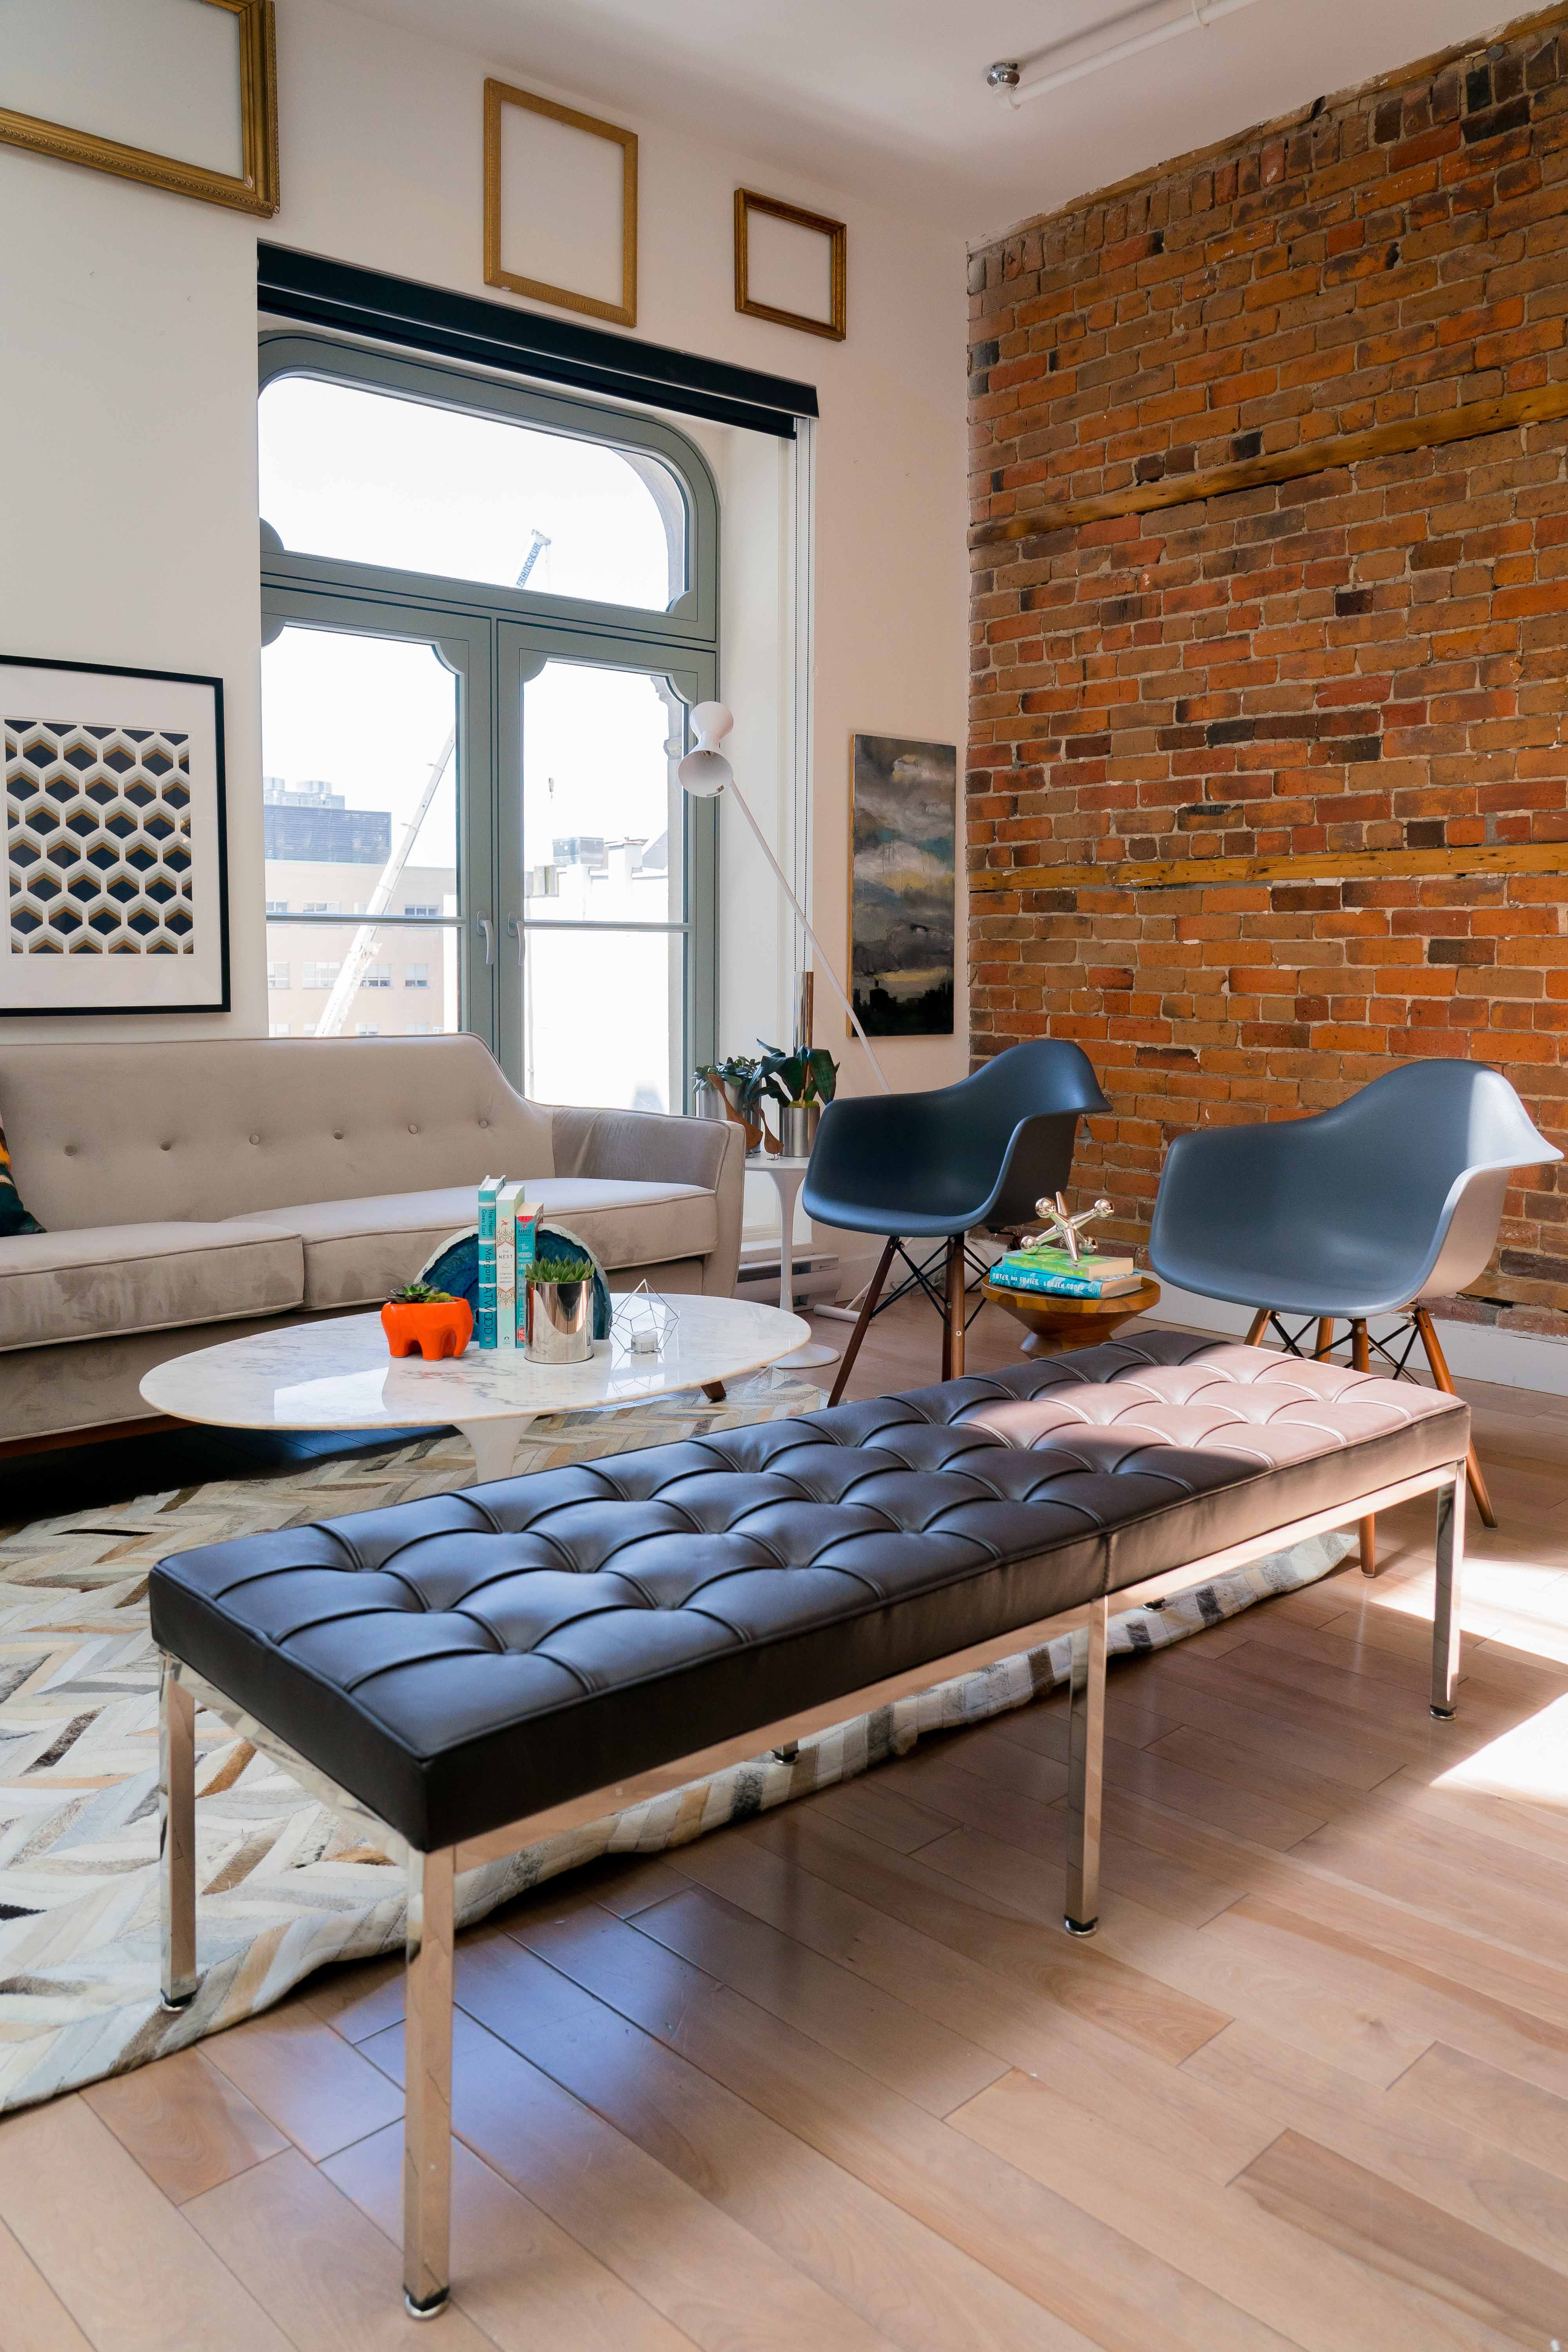 High Quality Reproduction Of Florence Knoll S Design Consistent With All Of Her Designs The Florence Knoll Bench Has A Spare Geometric Profile That Reflects